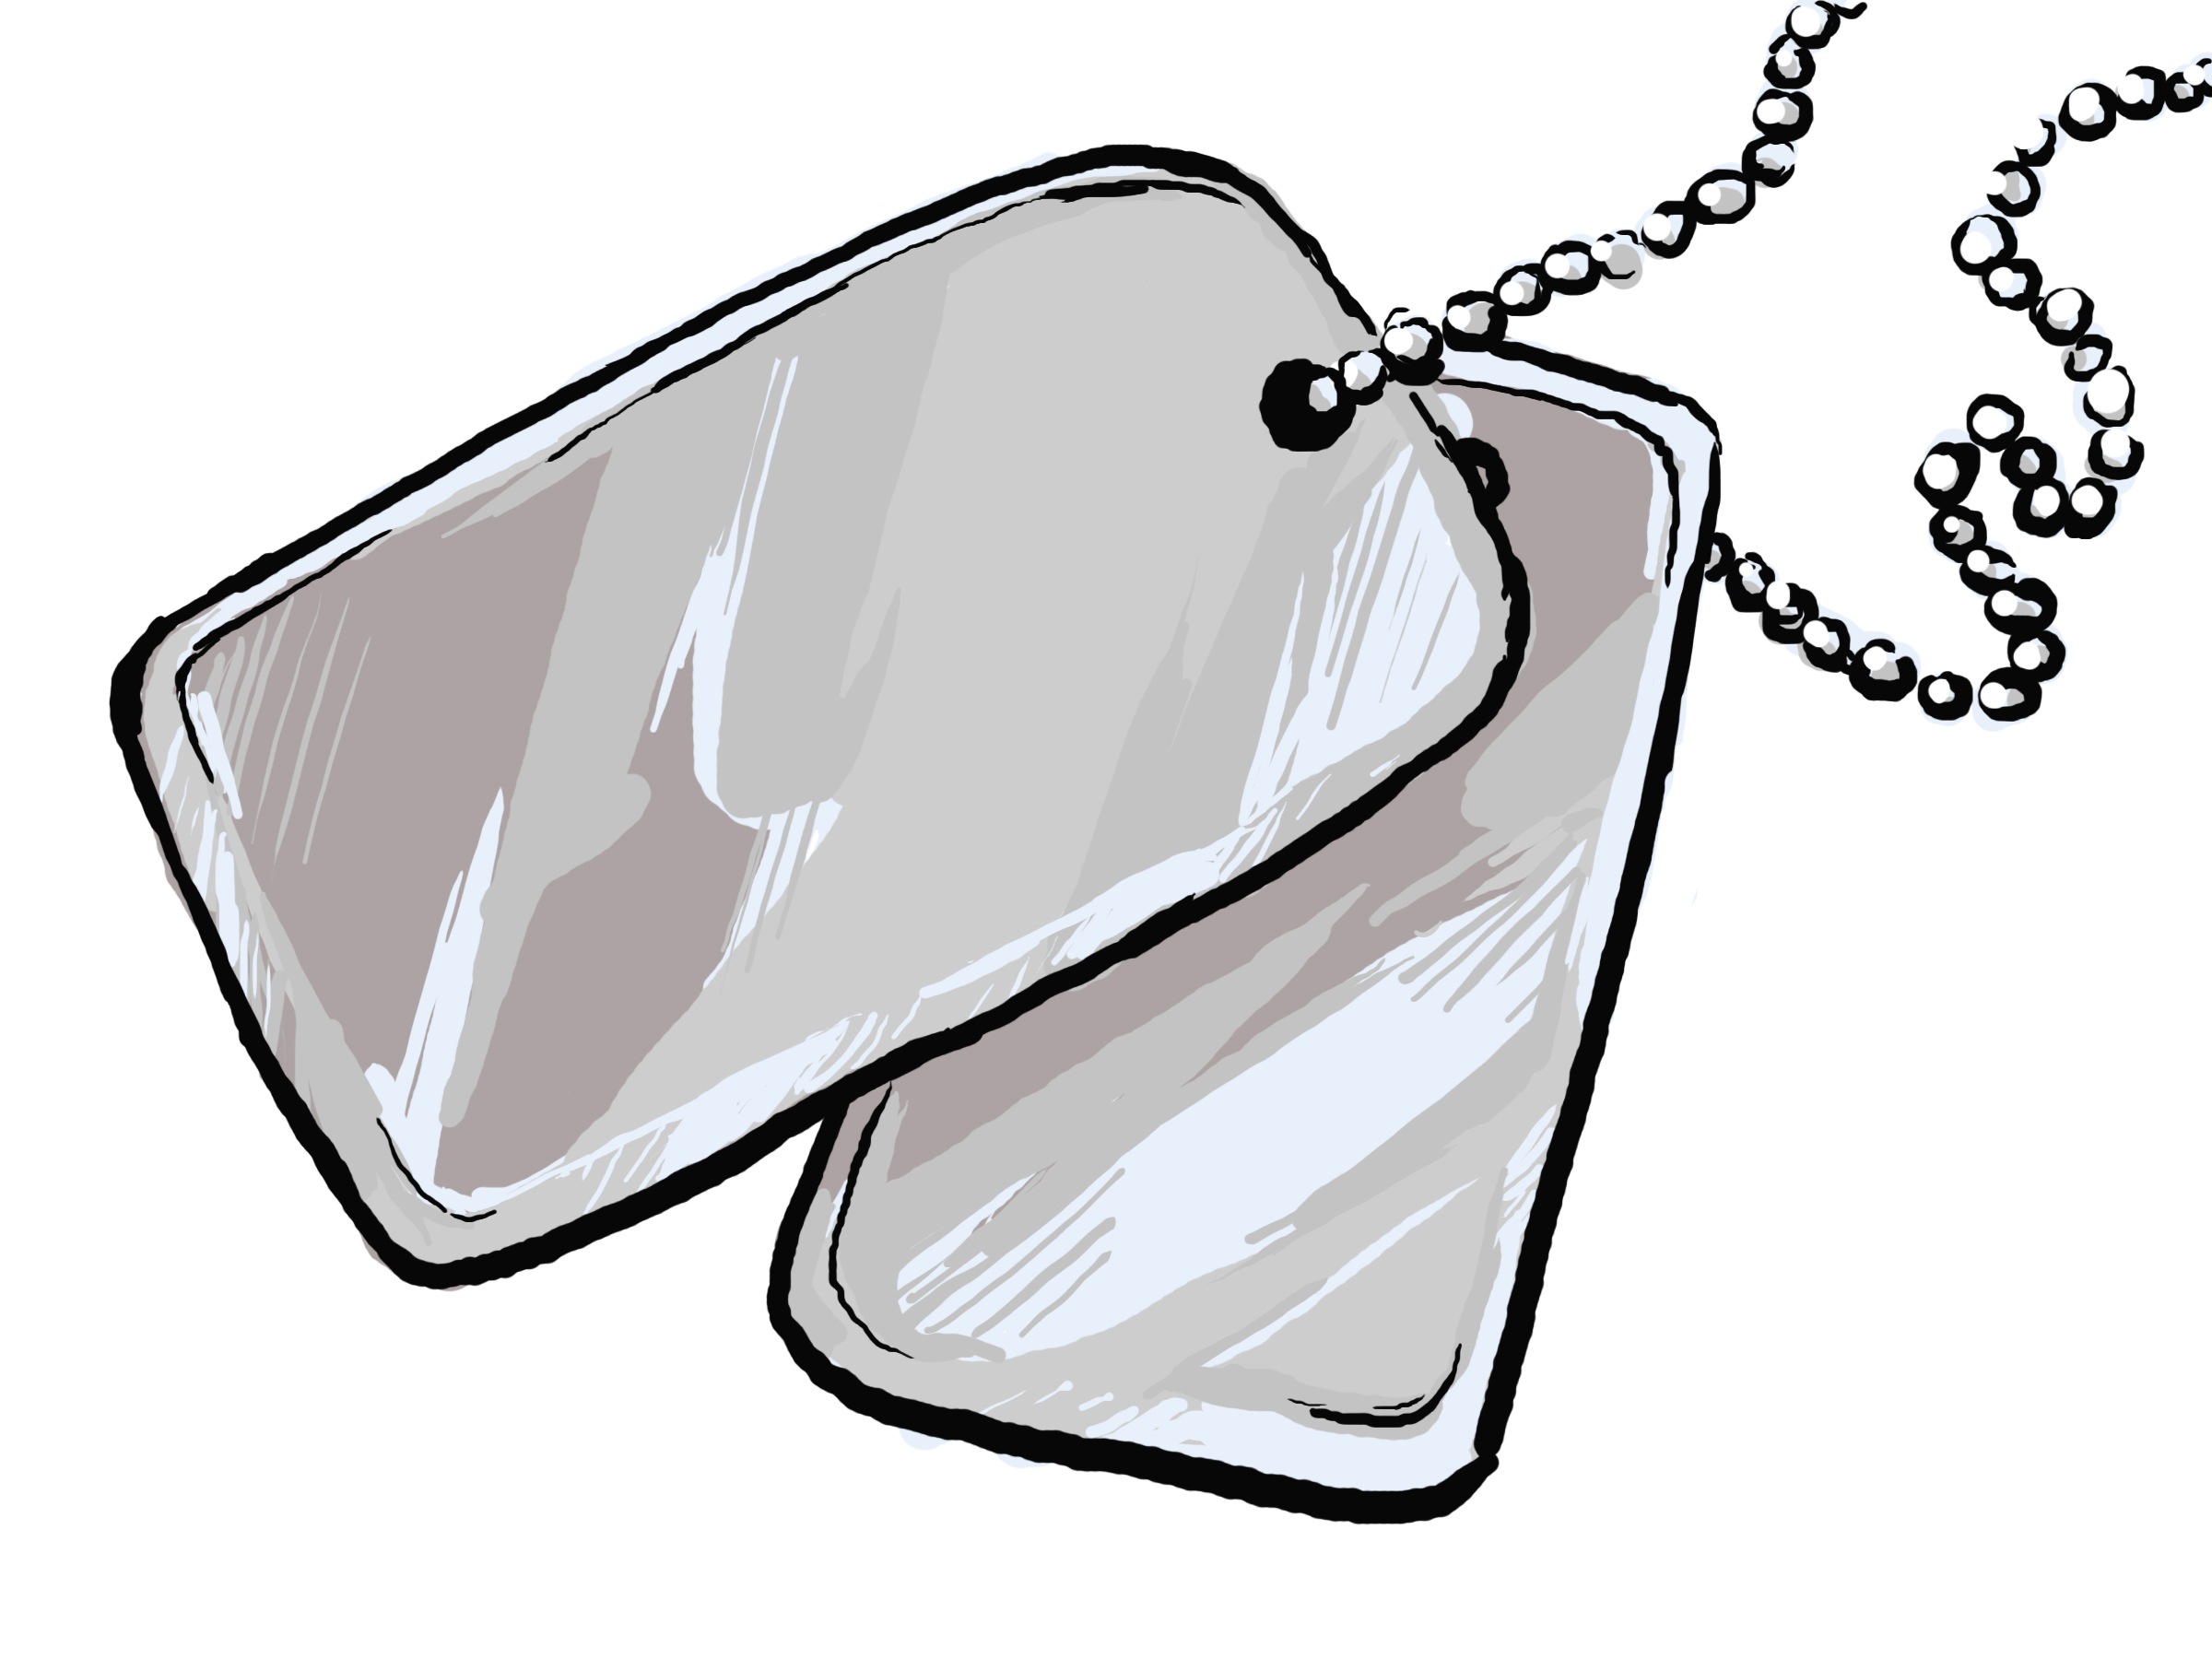 Army tags clipart png transparent download 89+ Dog Tags Clipart | ClipartLook png transparent download